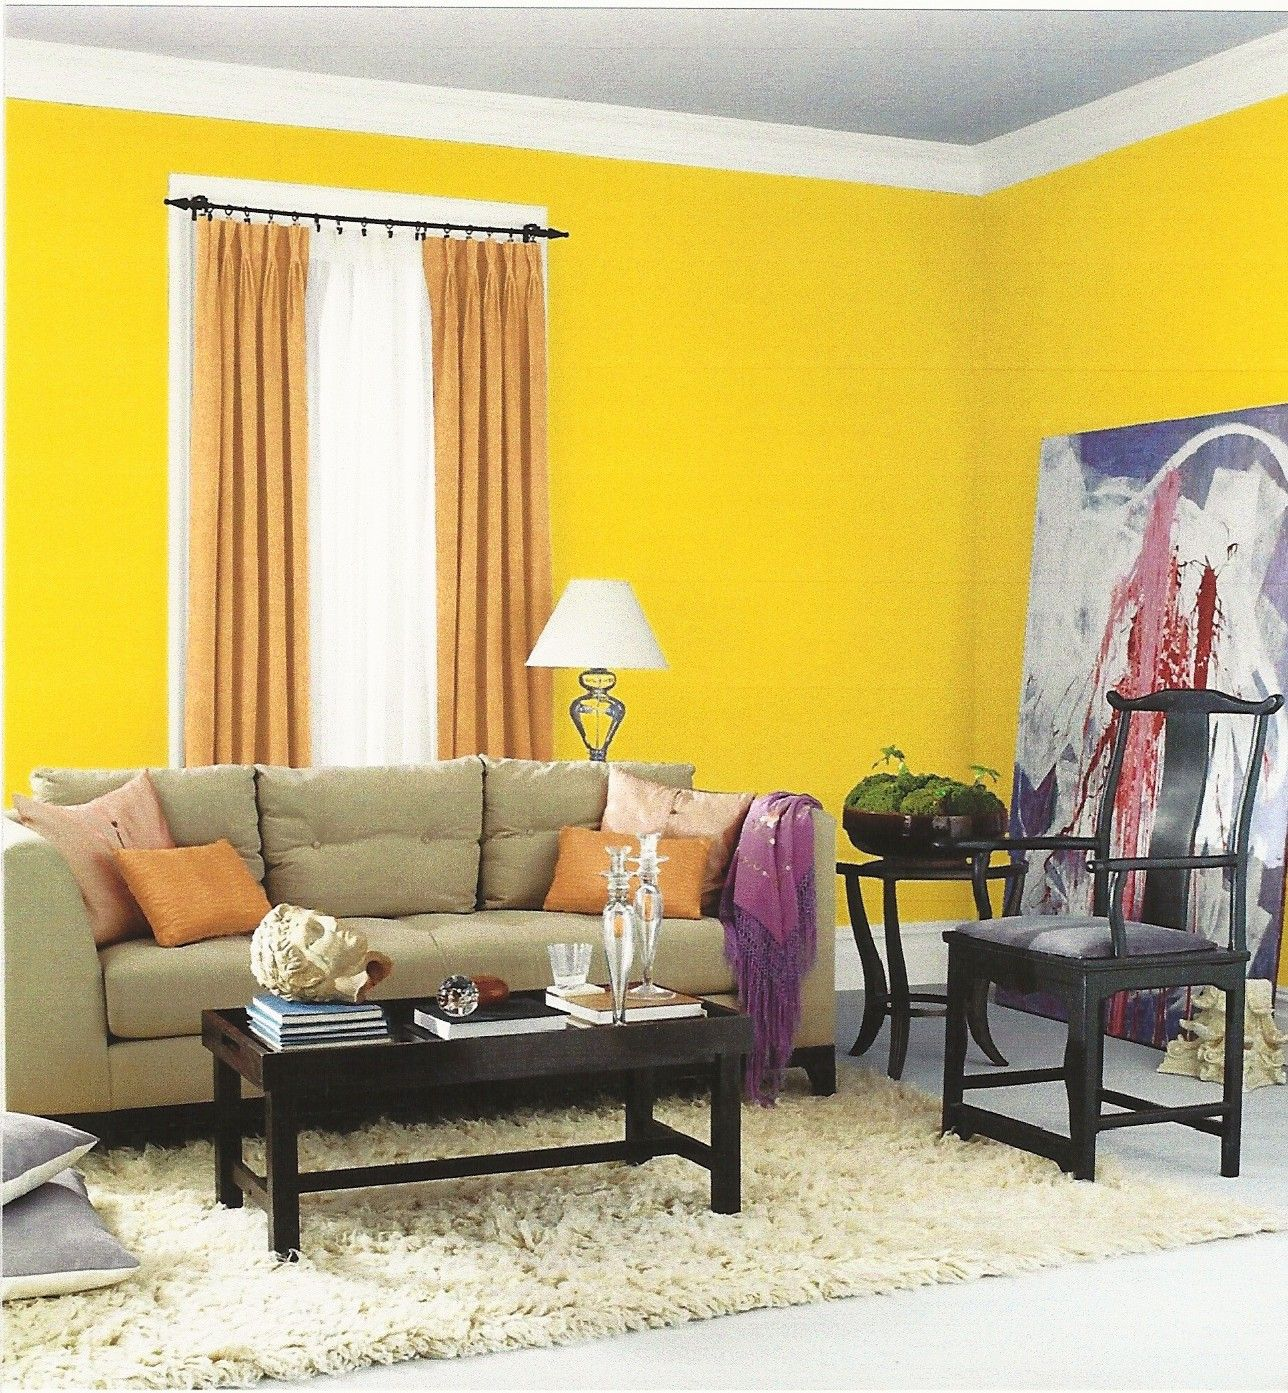 Interior Designs, Beautiful Small Space Yellow Paint Color